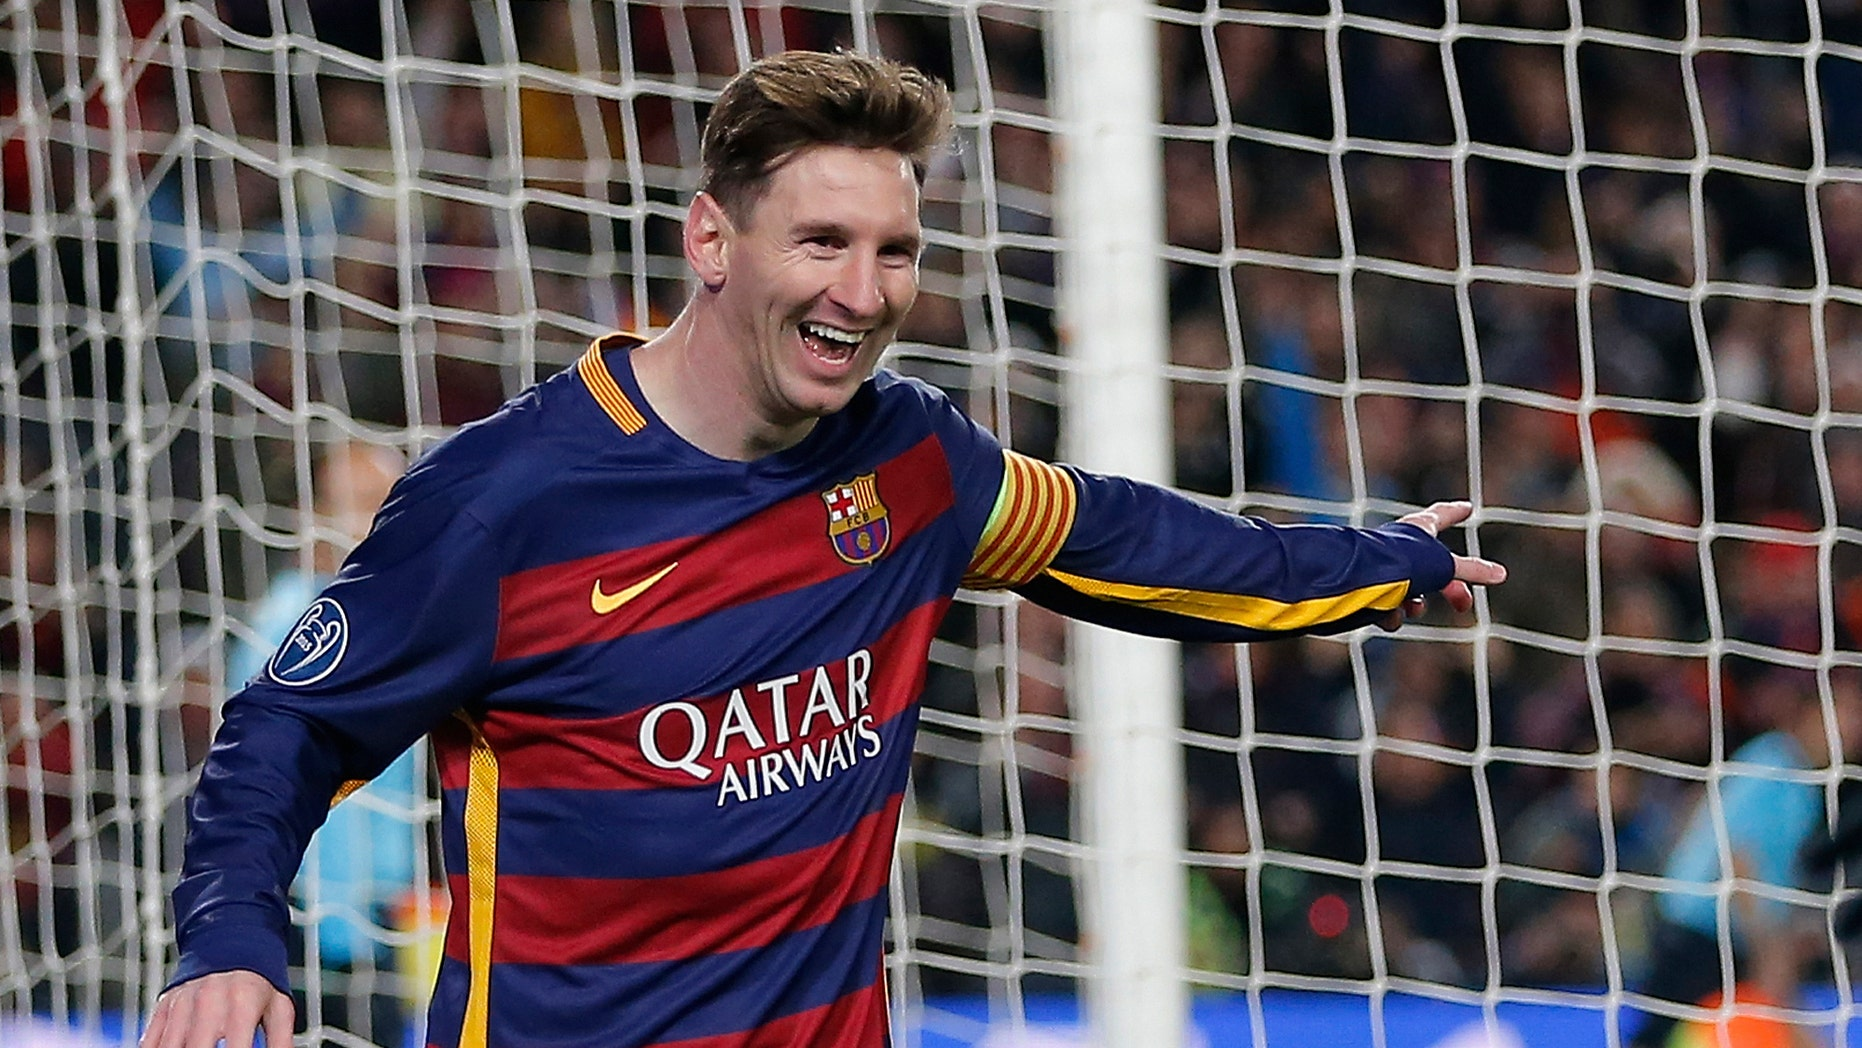 Barcelona's Lionel Messi, left, celebrates after scoring his team's 5th goal during the Group E Champions League soccer match between Barcelona and Roma at the Camp Nou stadium in Barcelona, Spain, Tuesday Nov. 24, 2015. (AP Photo/Emilio Morenatti)